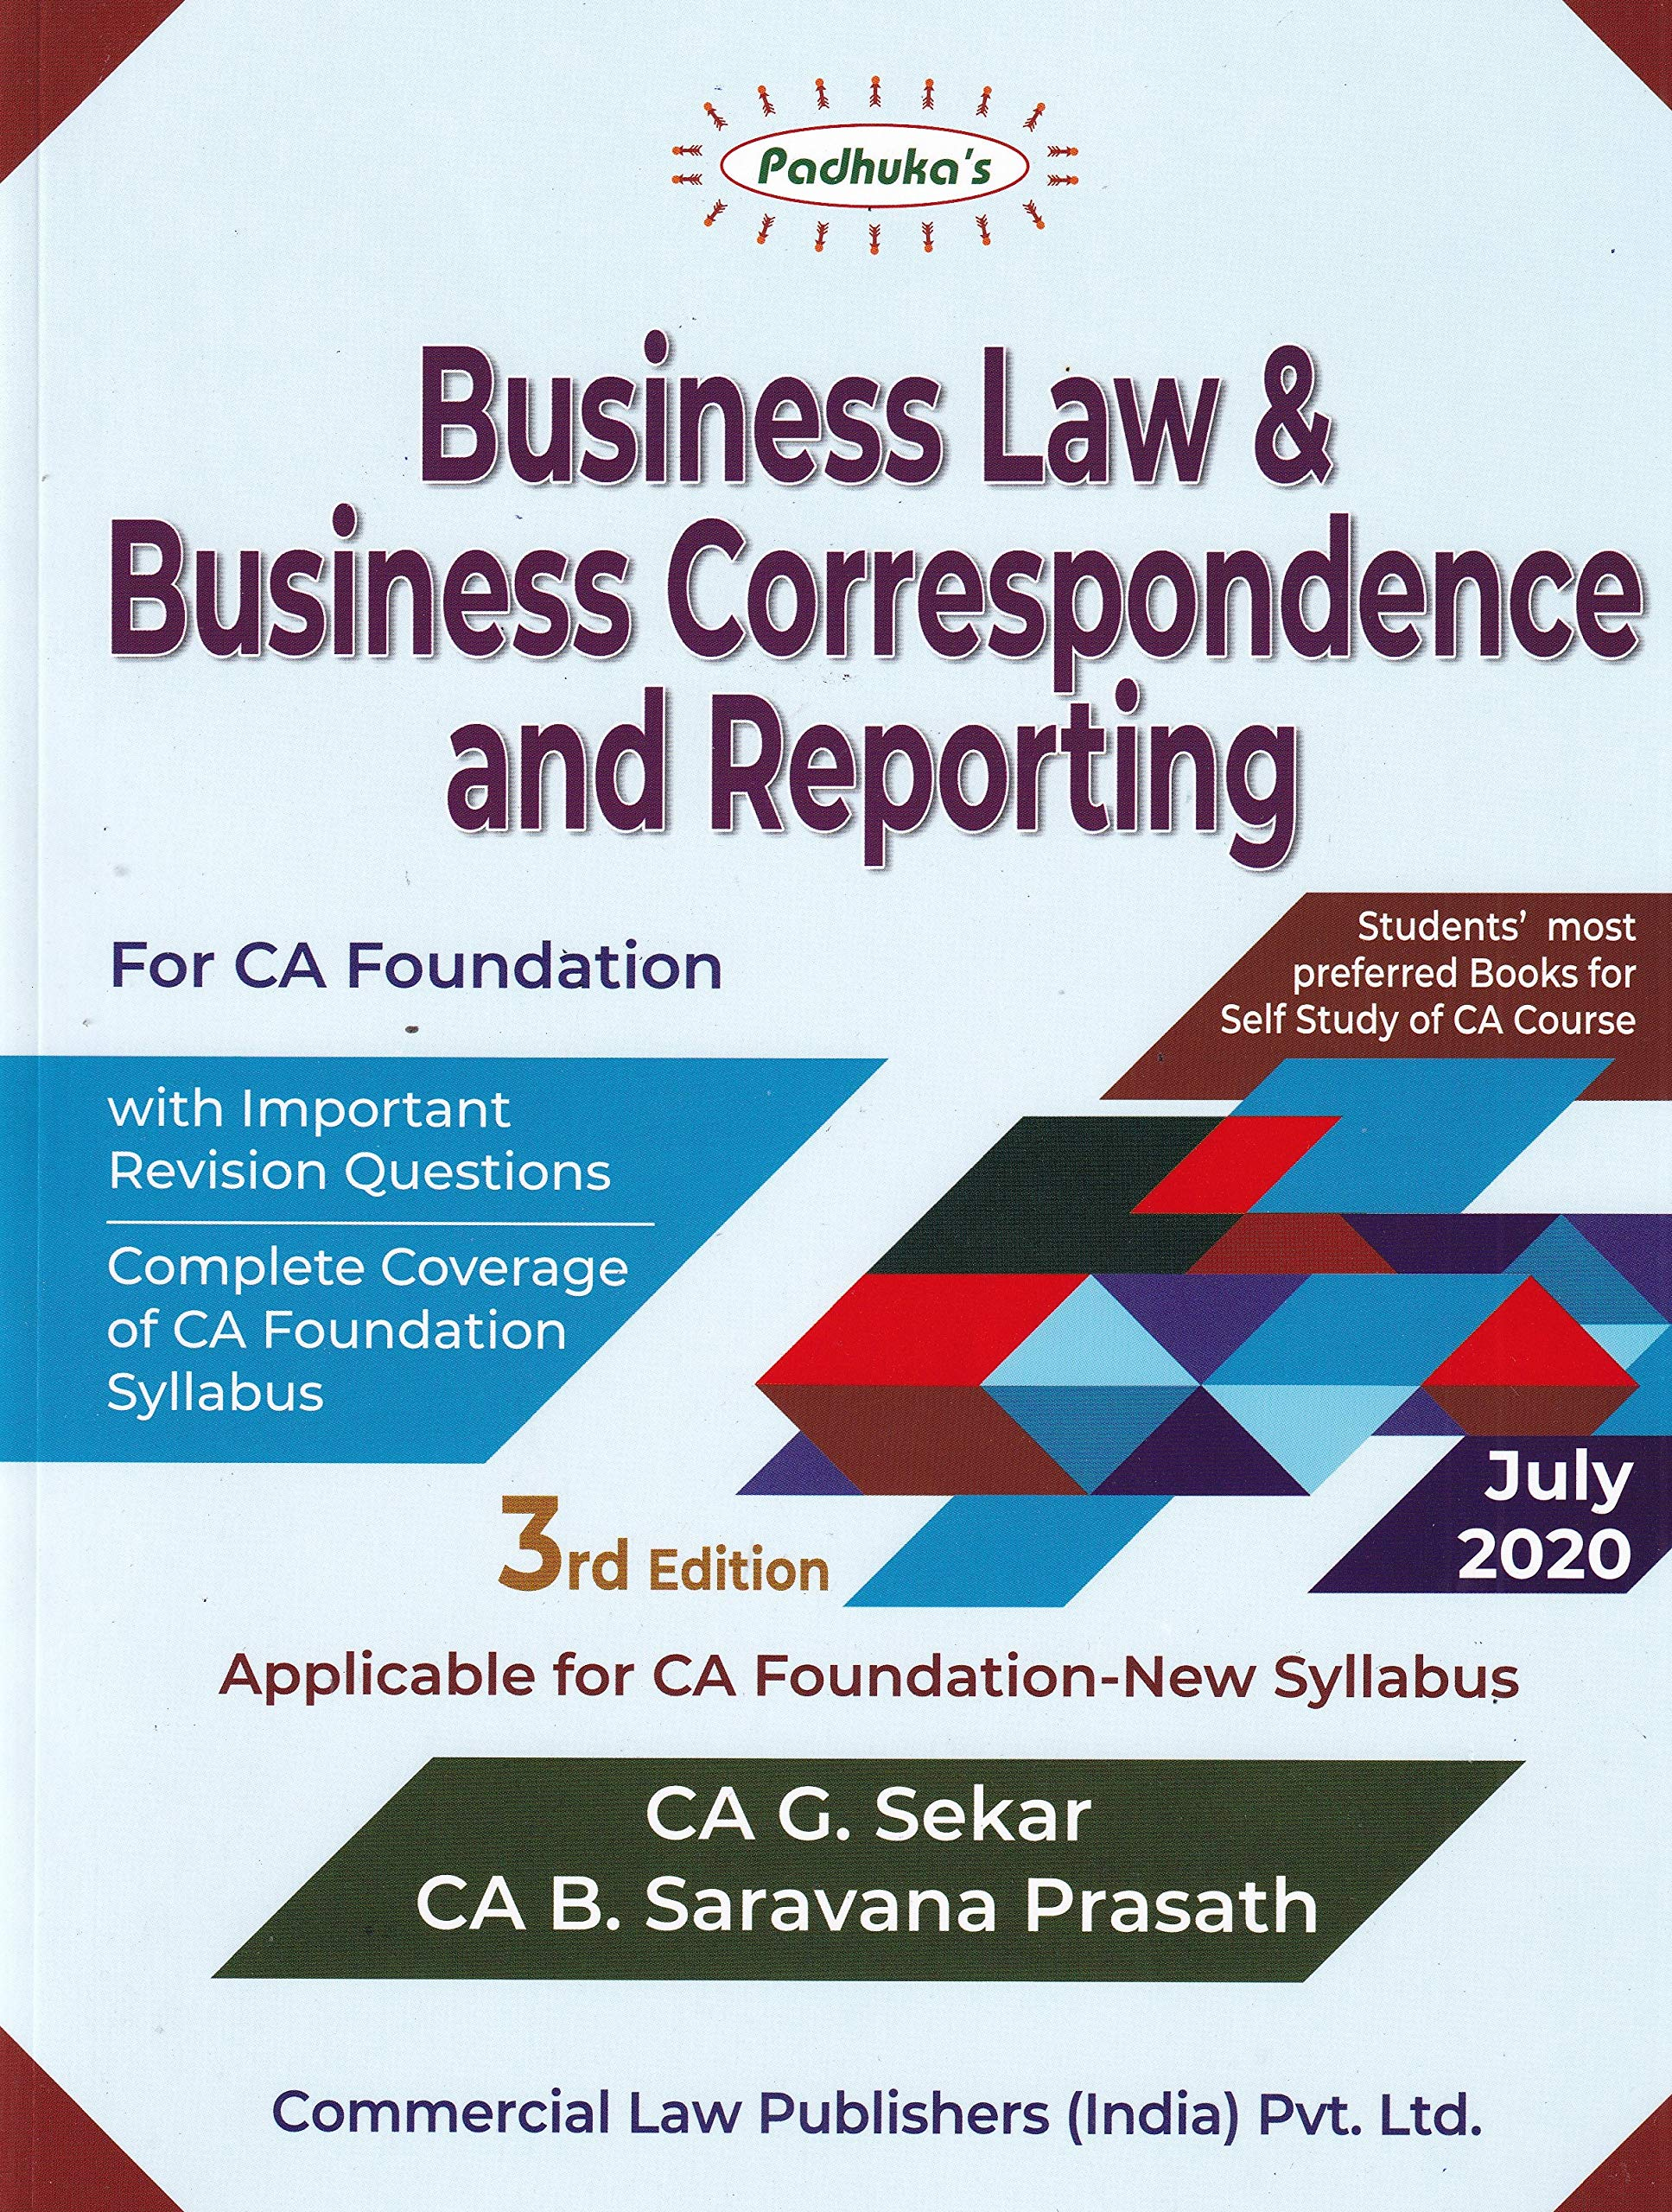 Padhuka's Business Law & Correspondence and Reporting for CA Foundation – 3/e, July 2020